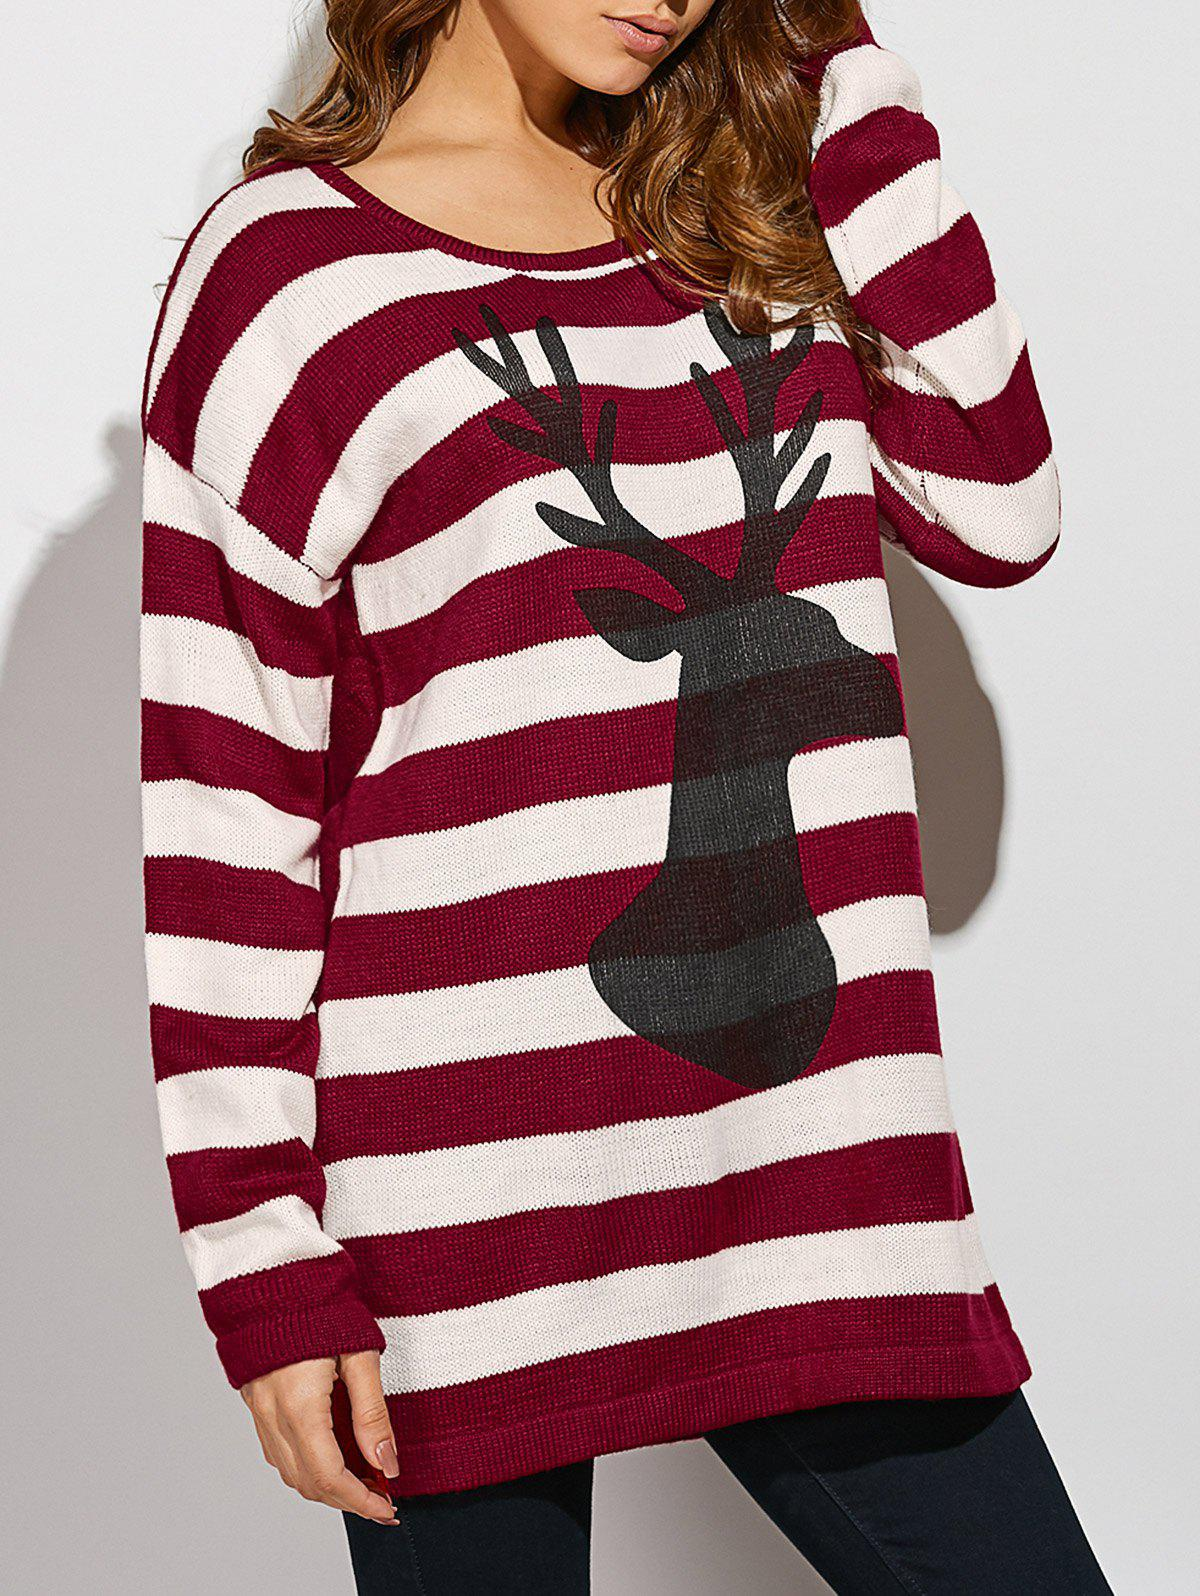 Christmas Button Back Striped SweaterWOMEN<br><br>Size: ONE SIZE(FIT SIZE XS TO M); Color: STRIPE; Type: Pullovers; Material: Acrylic; Sleeve Length: Full; Collar: Scoop Neck; Style: Casual; Pattern Type: Animal; Season: Fall,Spring,Winter; Weight: 0.444kg; Package Contents: 1 x Sweater;